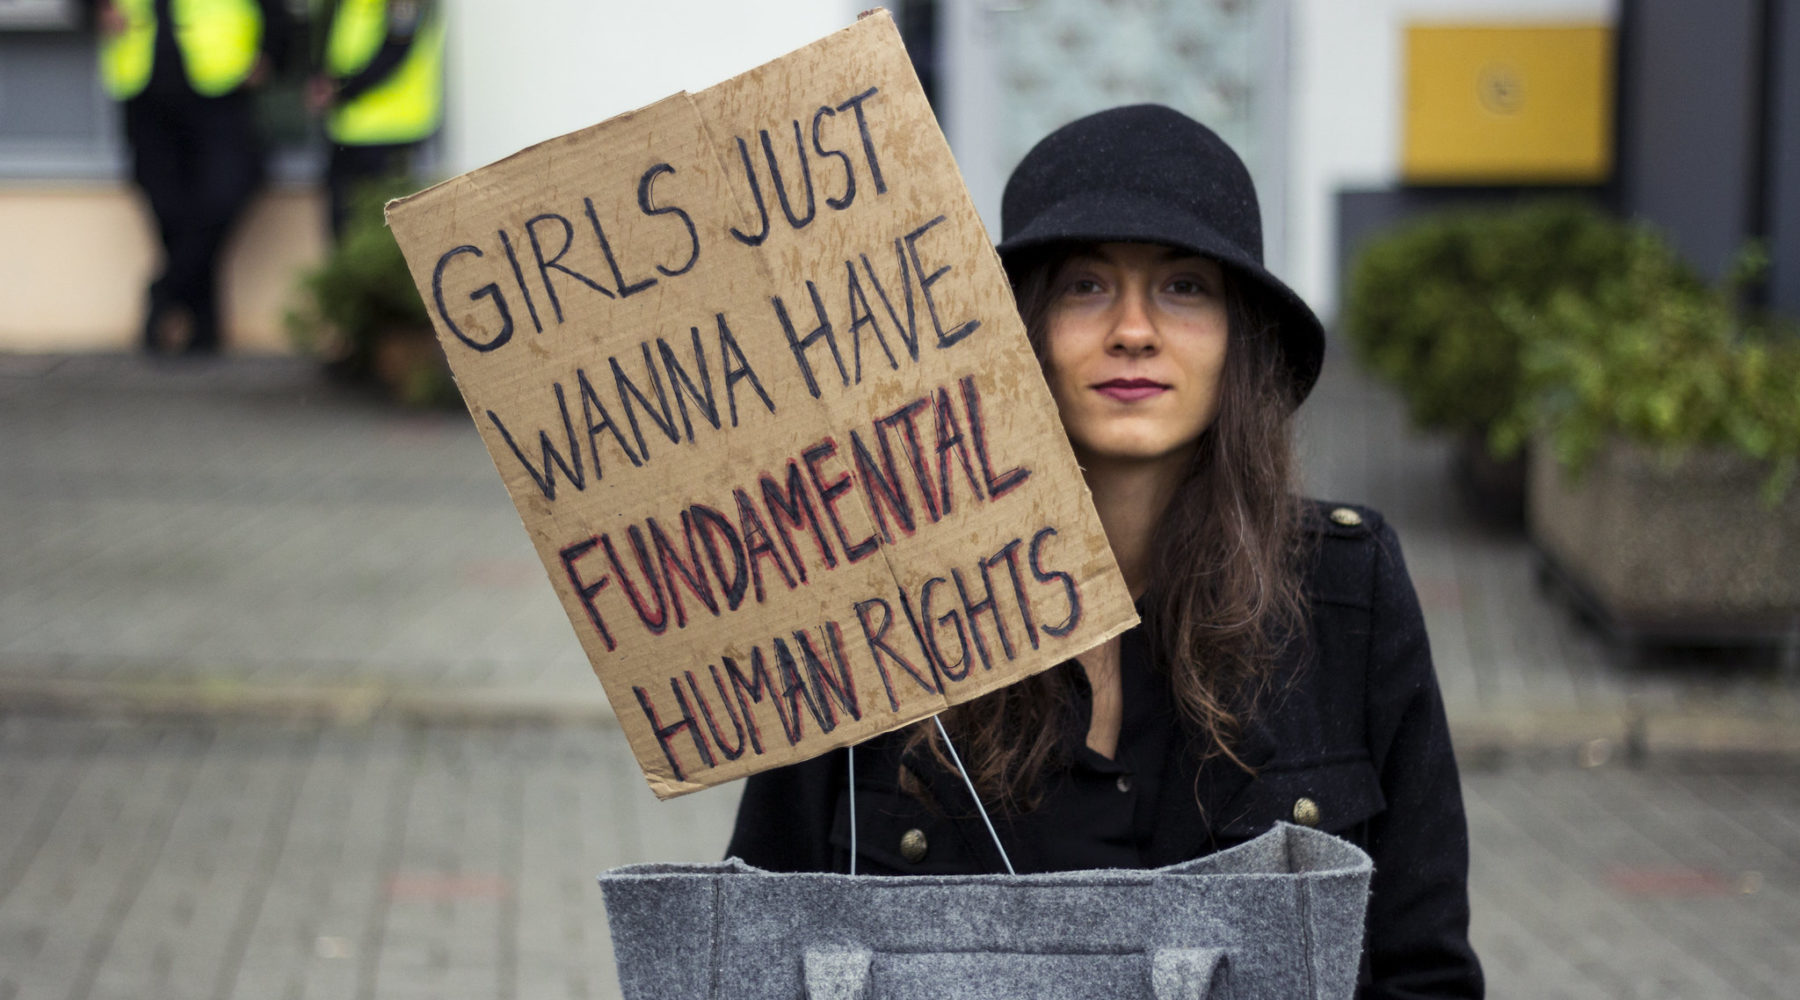 """Girls just wanna have fundamental human rights"" sign at protest against anti-abortion laws in Poland"